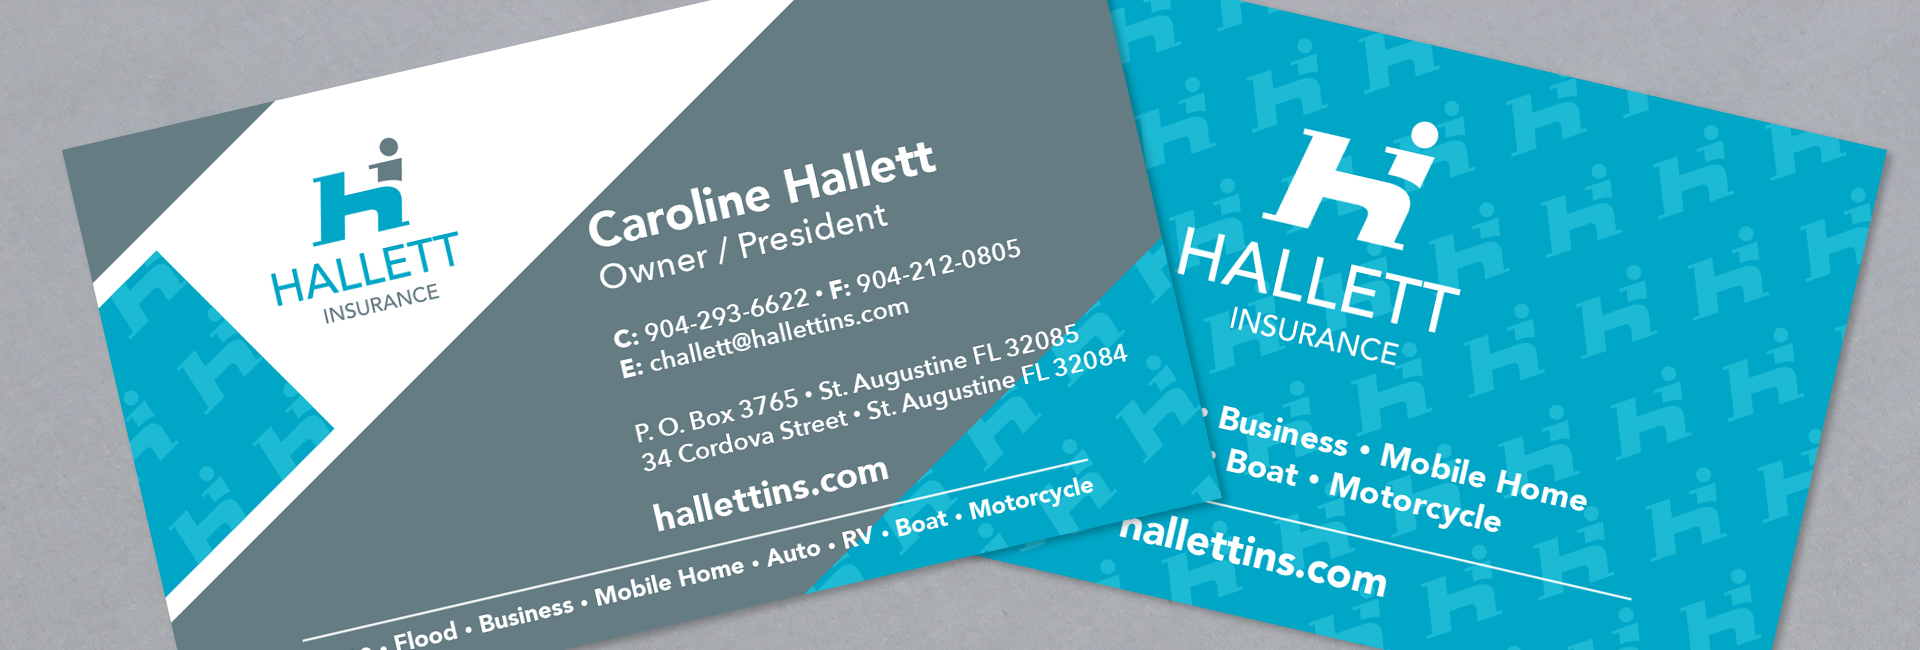 hallett-businesscards